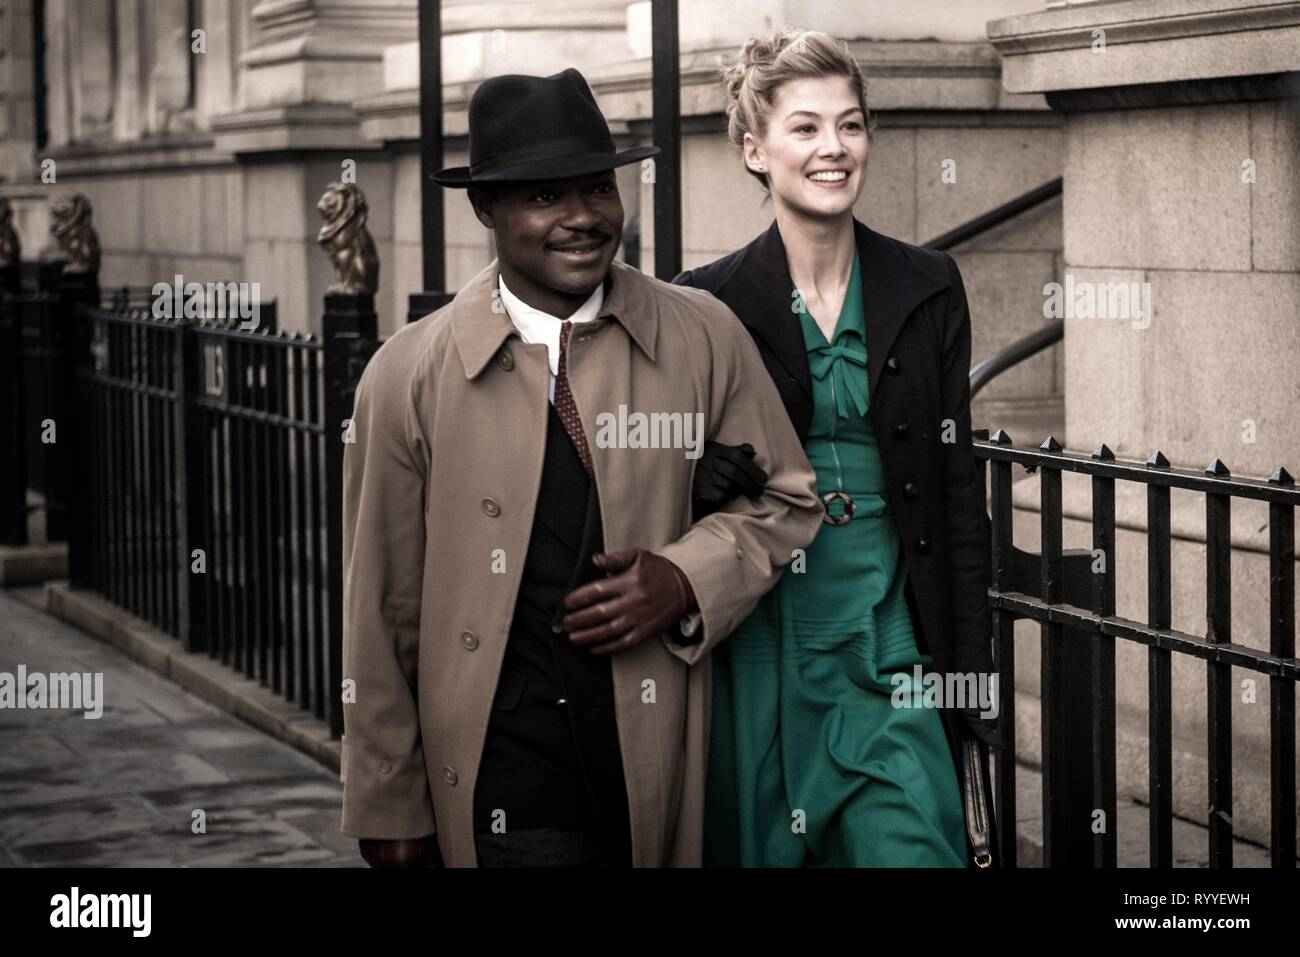 OYELOWO,PIKE, A UNITED KINGDOM, 2016 - Stock Image